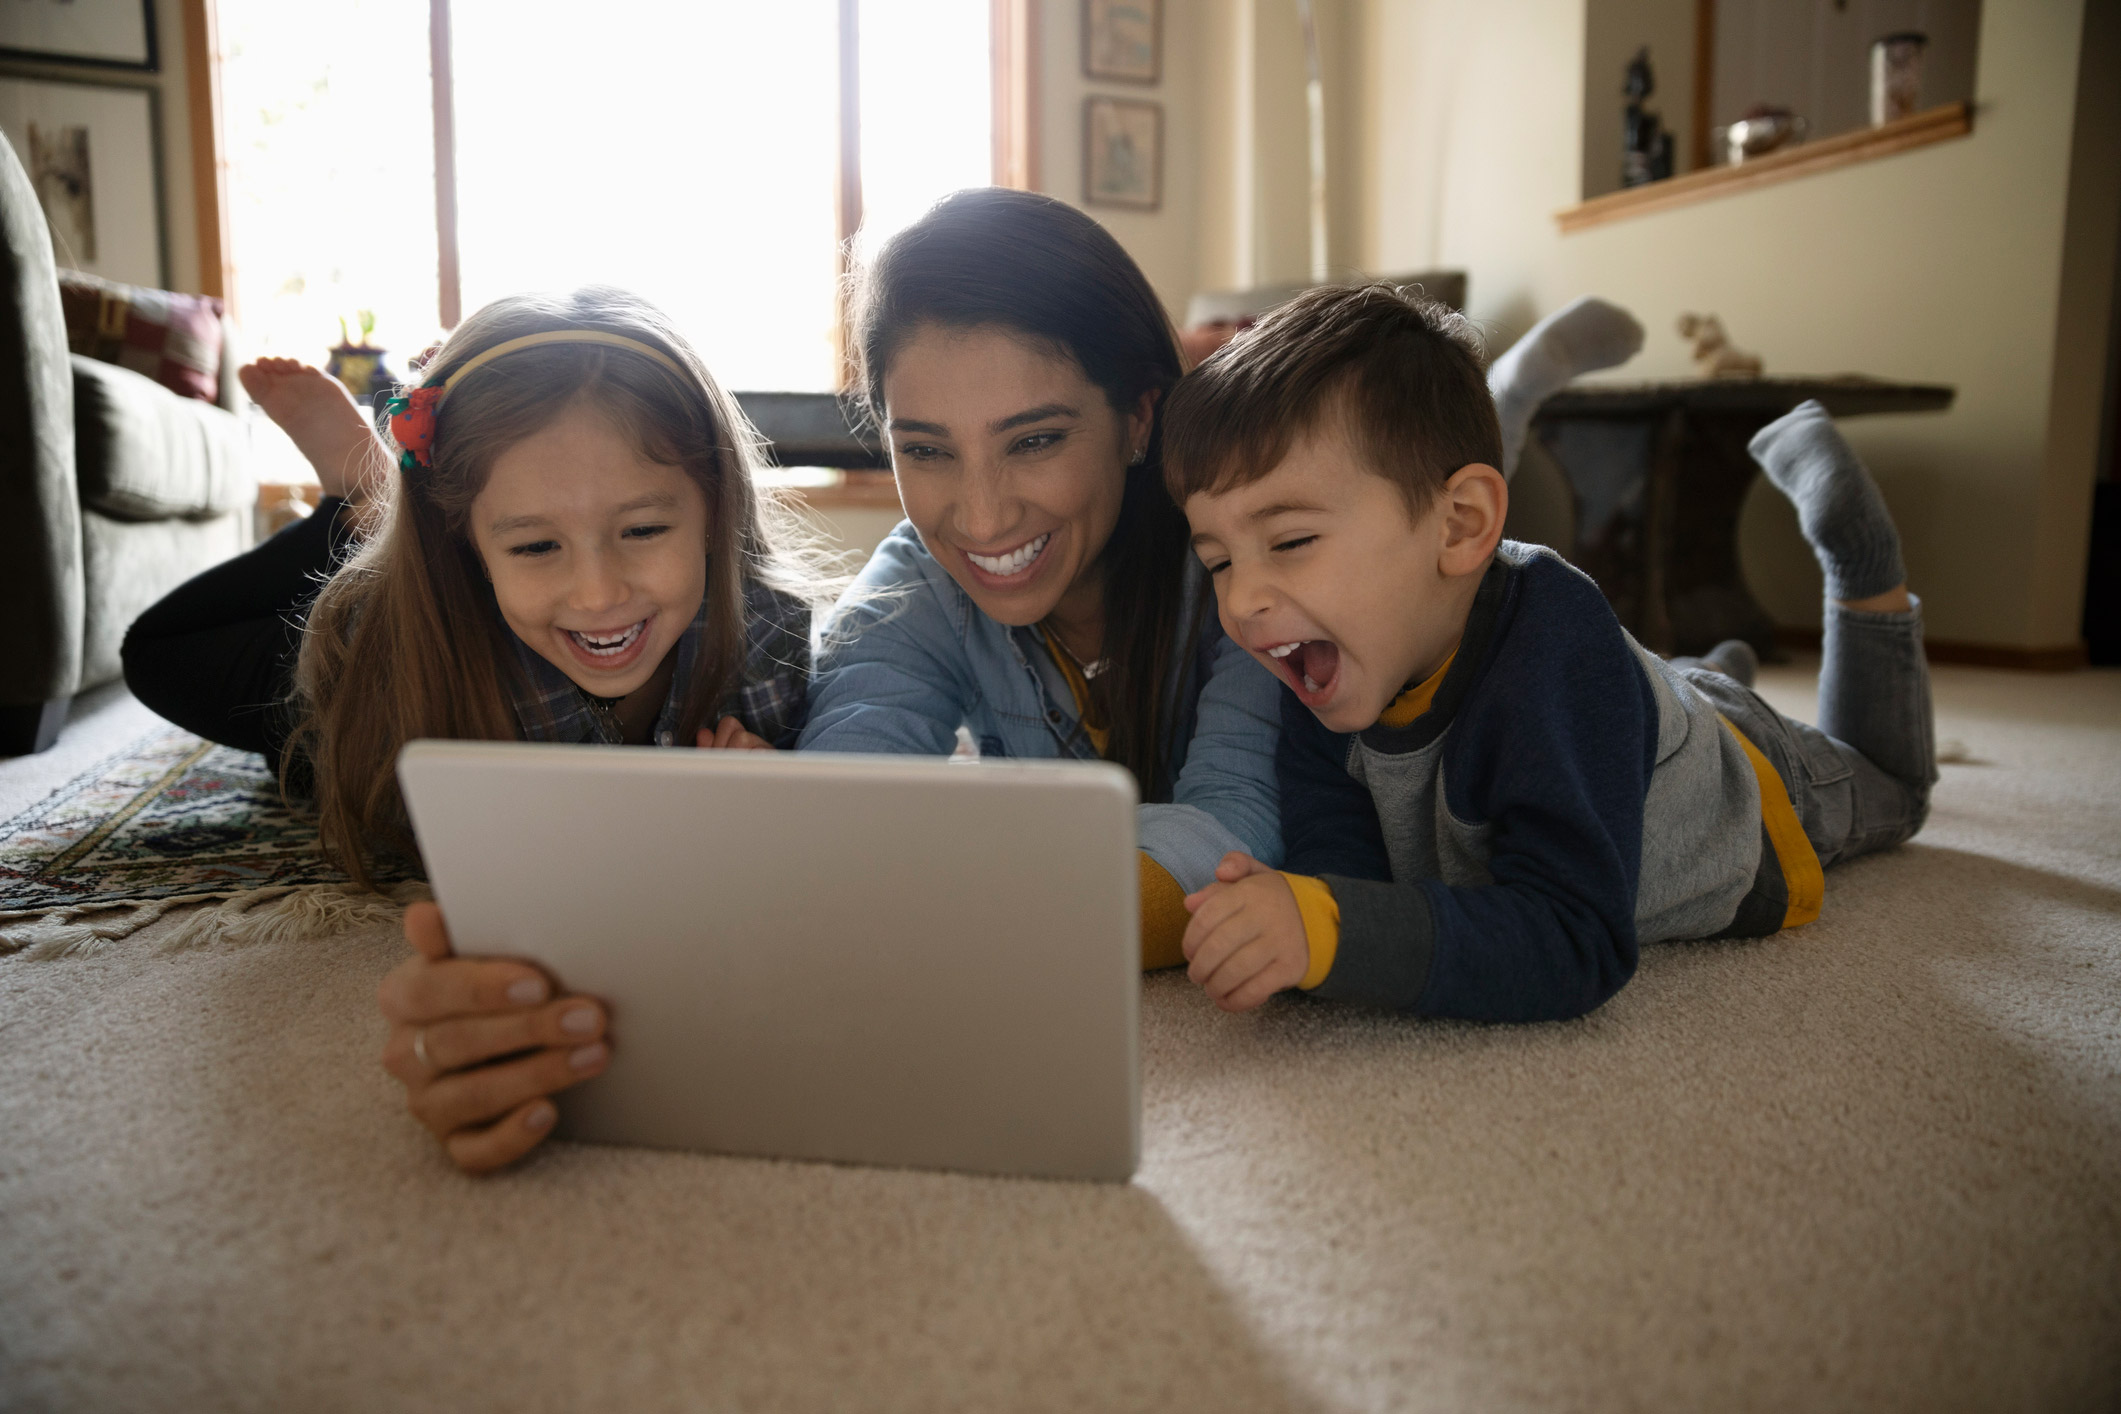 Expanding Latino Parents' Access to Child Development Research through the News Media